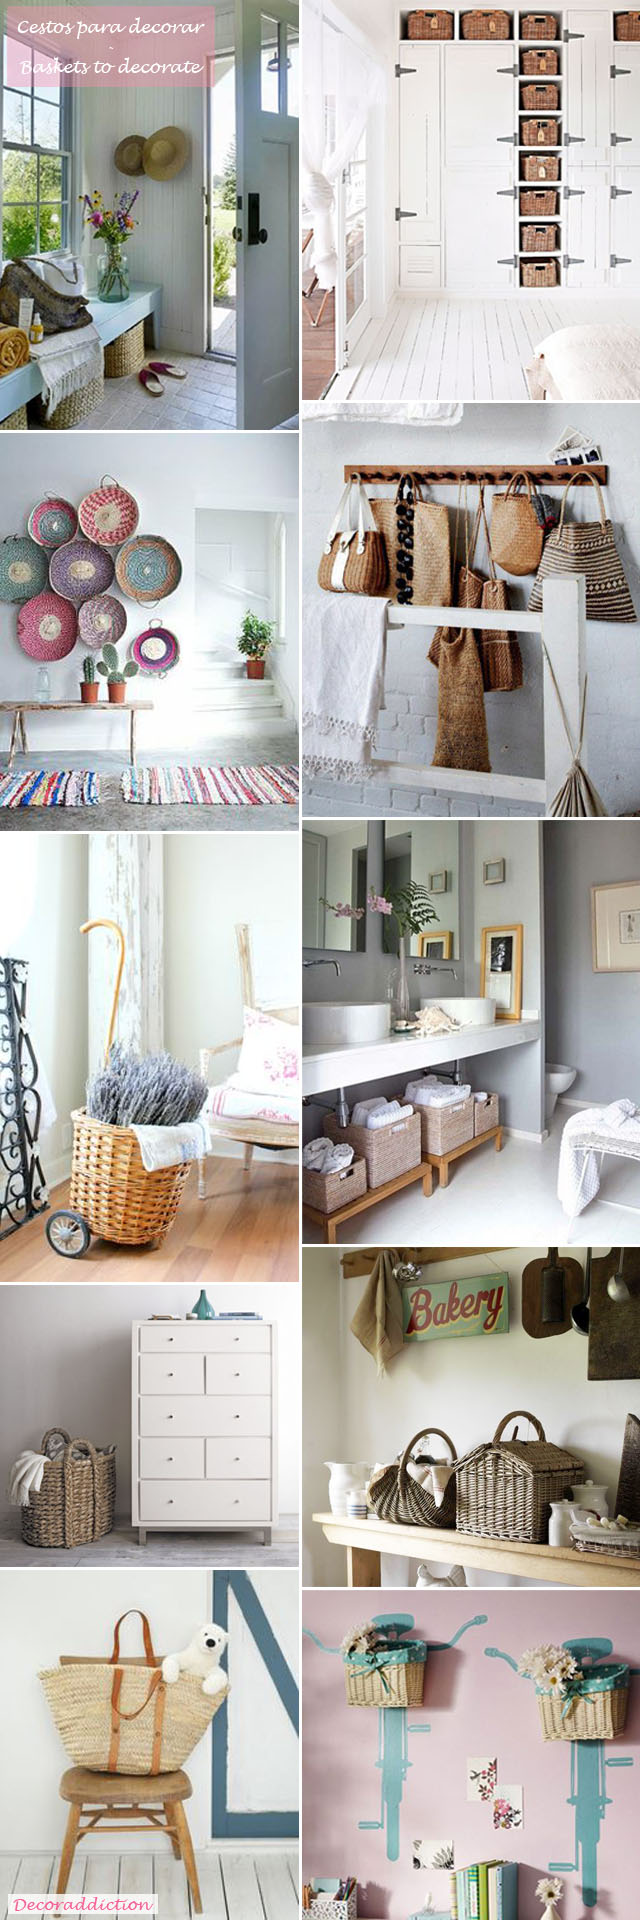 *My new home* Decorar con cestos - Decorate with baskets_espacios